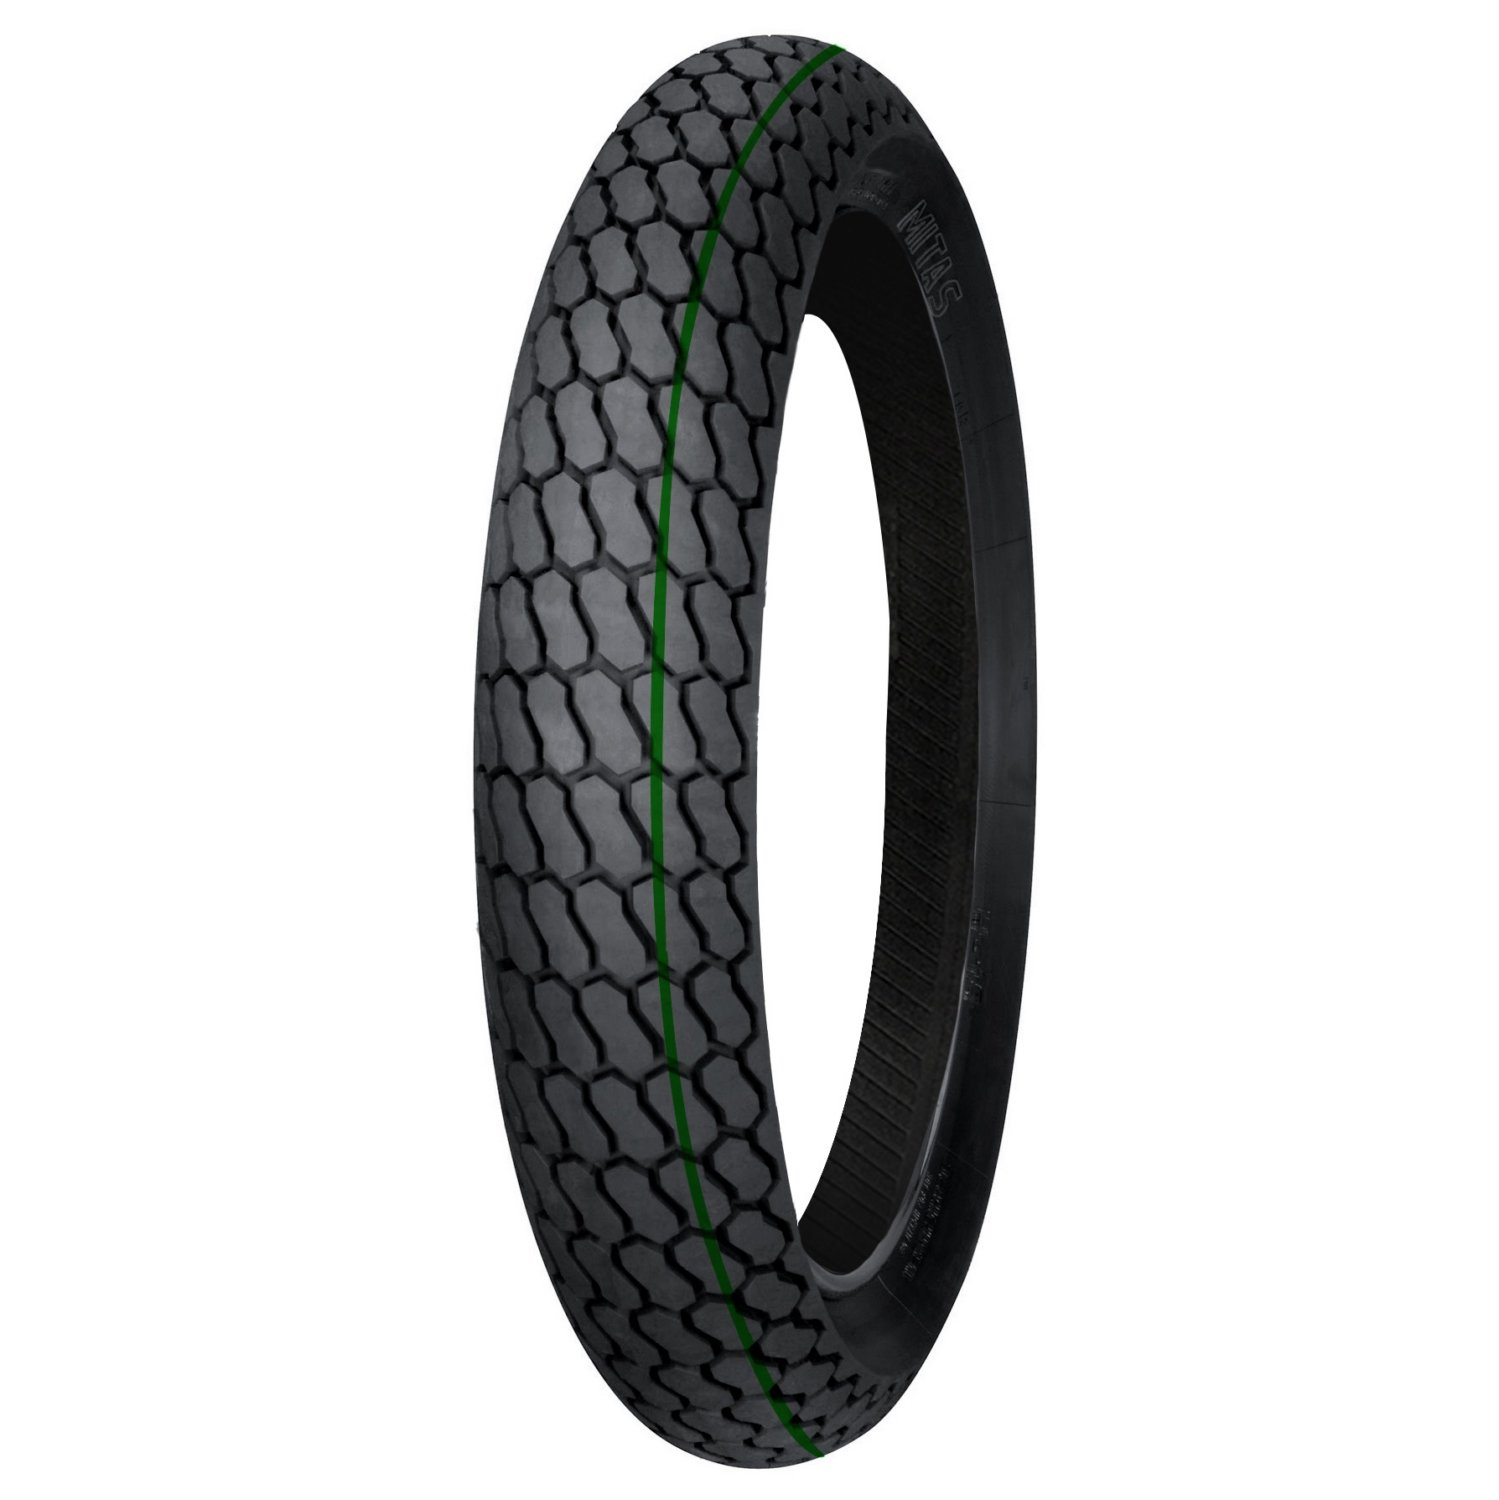 H-18 Mitas Motorcycle Front Flat Track Tire 130/80-19 Green Stripe Soft